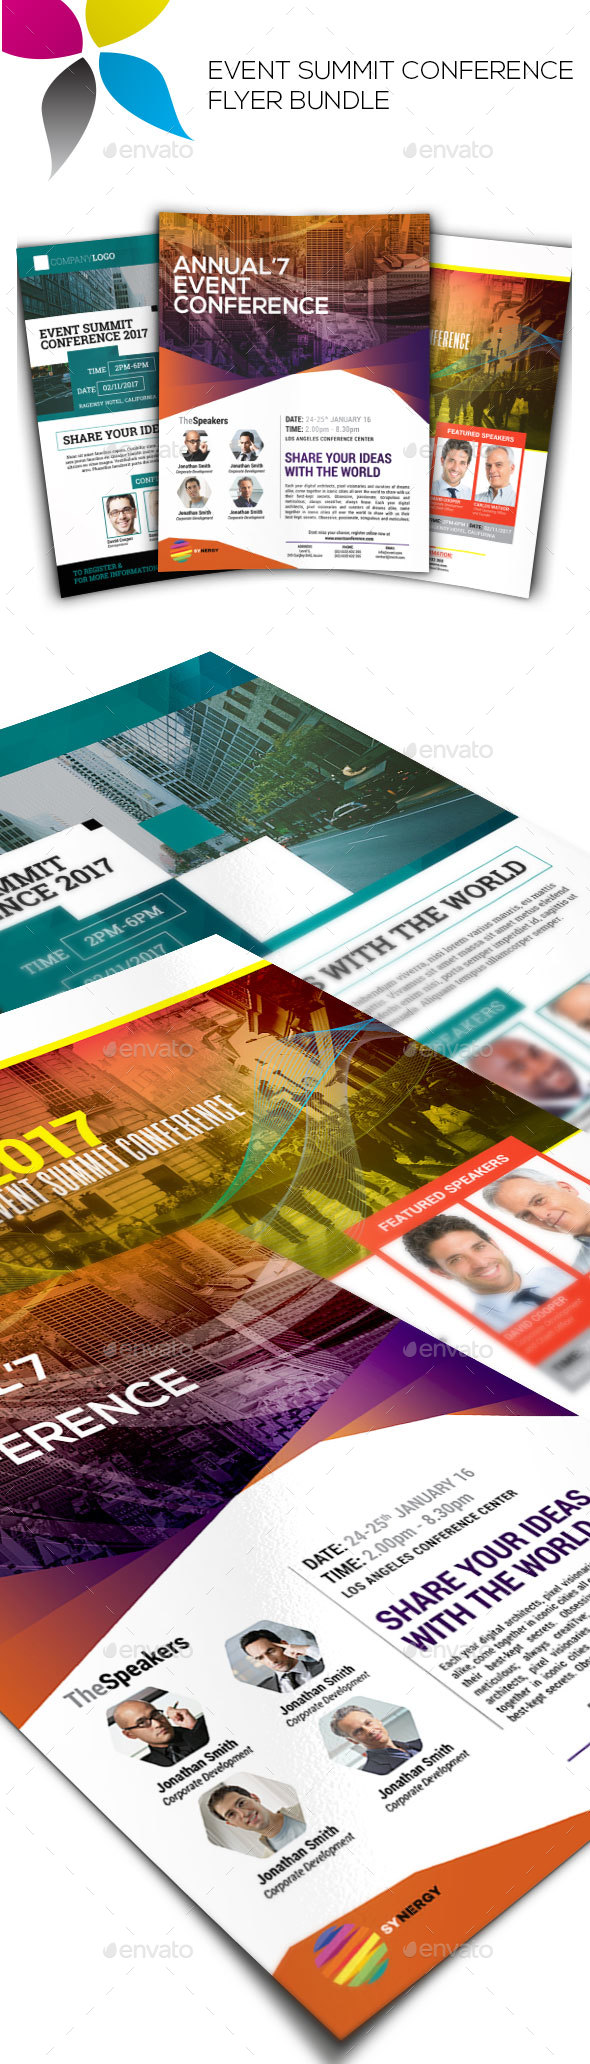 Event Summit Conference Flyer Bundle Vol.1 - Corporate Flyers